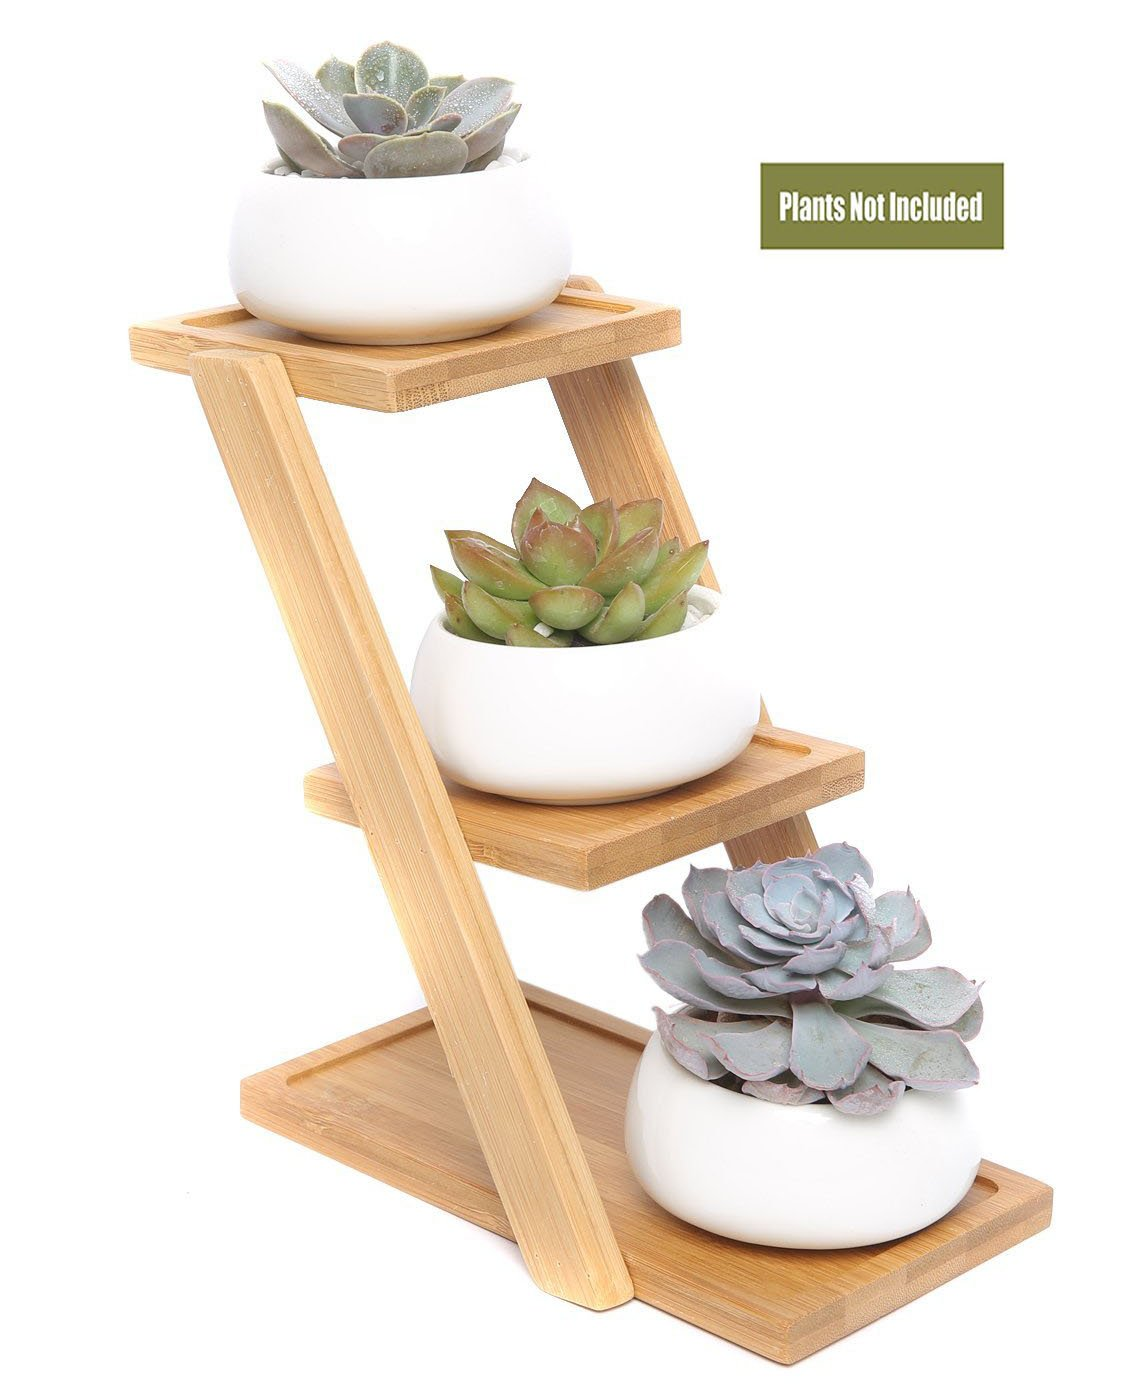 SINOVAL Plant Pot Small Round White Ceramic For Succulent/Cactus, Modern Garden Decorative, 3 Tier Bamboo Stand